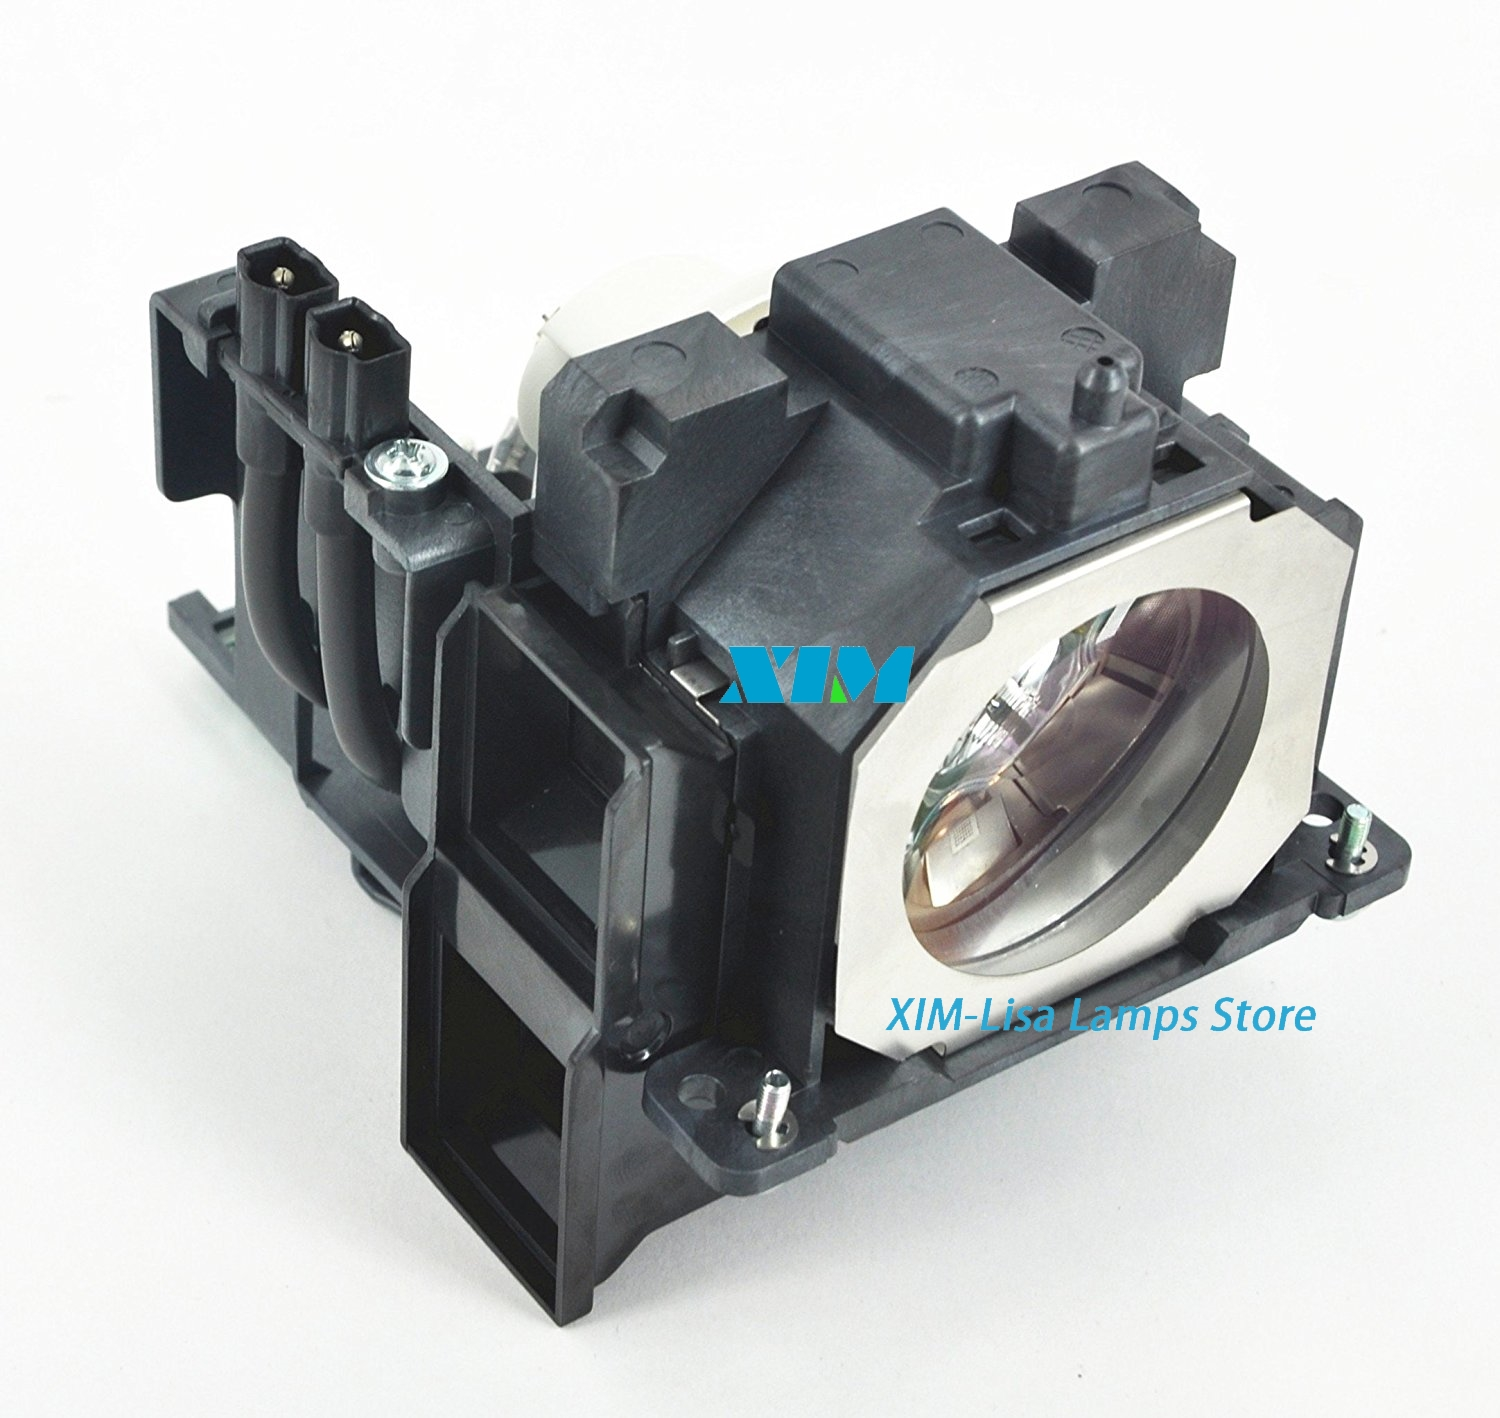 High Quality Replacement Projector lamp with housing ET-LAE300 For PT-EW540 PT-EZ770ZL PT-EX800Z PT-EX800ZL PT-EW730Z PT-EW730Z et lae900 high quality replacement bulb with housing compatible for panasonic pt ae900 pt ae900u pt ae900e with 180days warranty